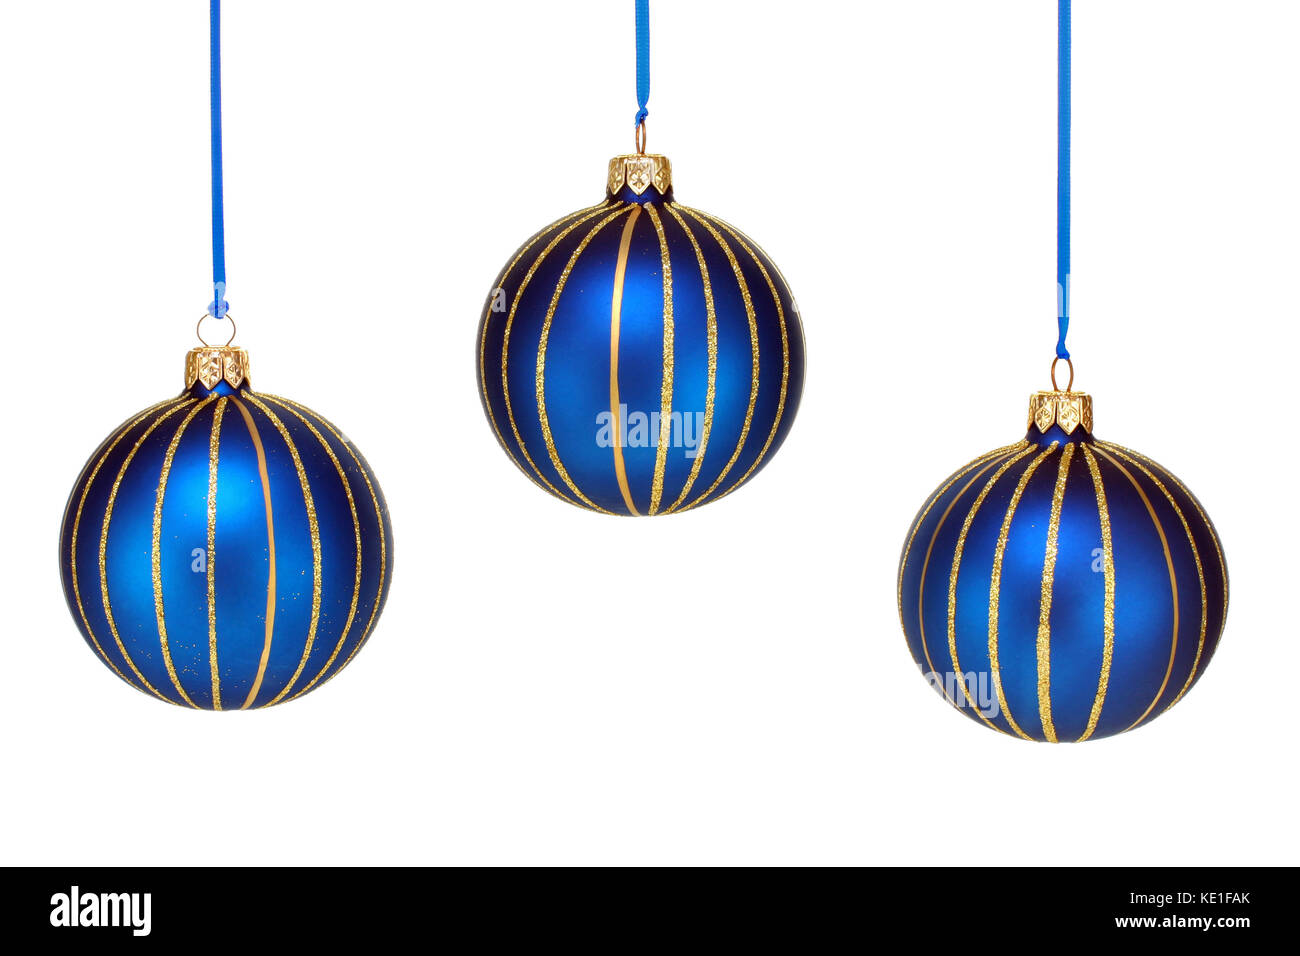 three blue and gold christmas ornaments hanging against a white background stock image